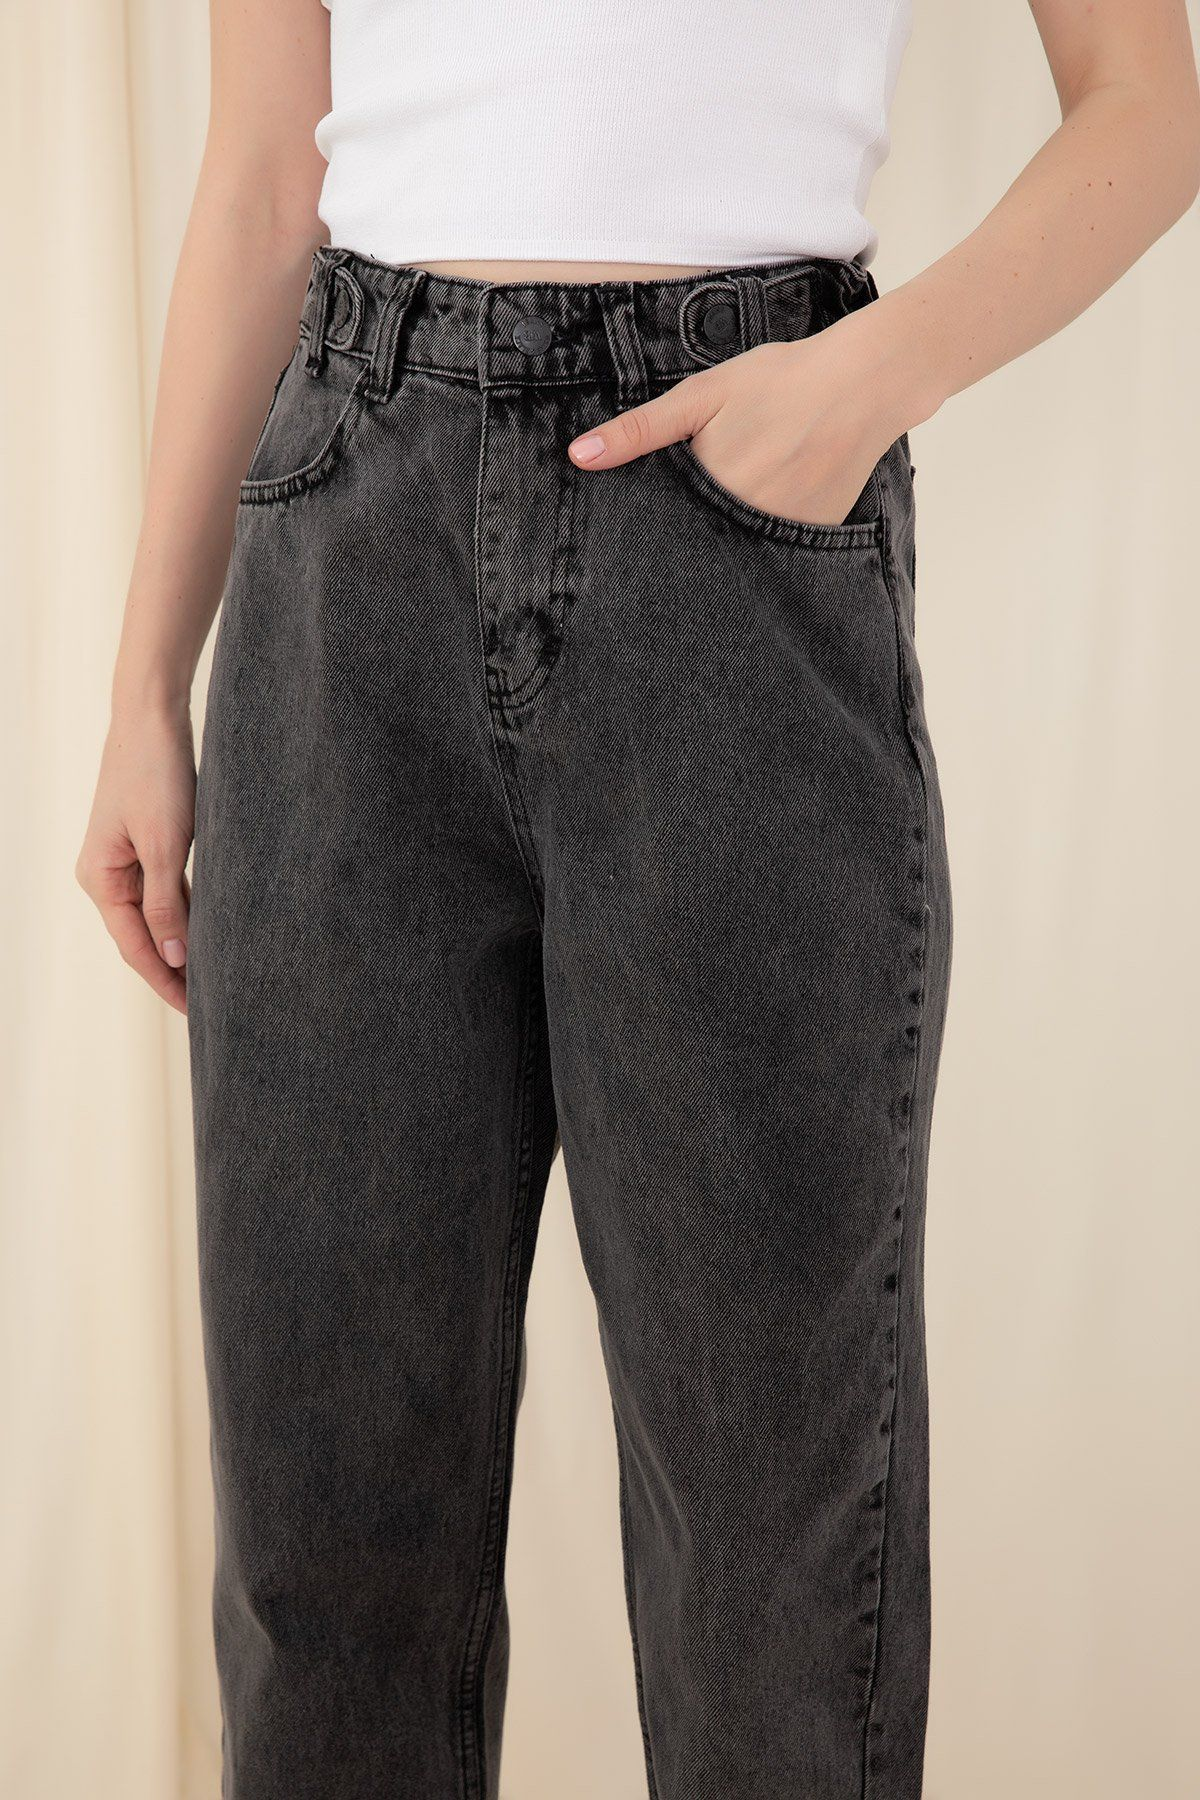 Boot Cut Pants-Anthracite